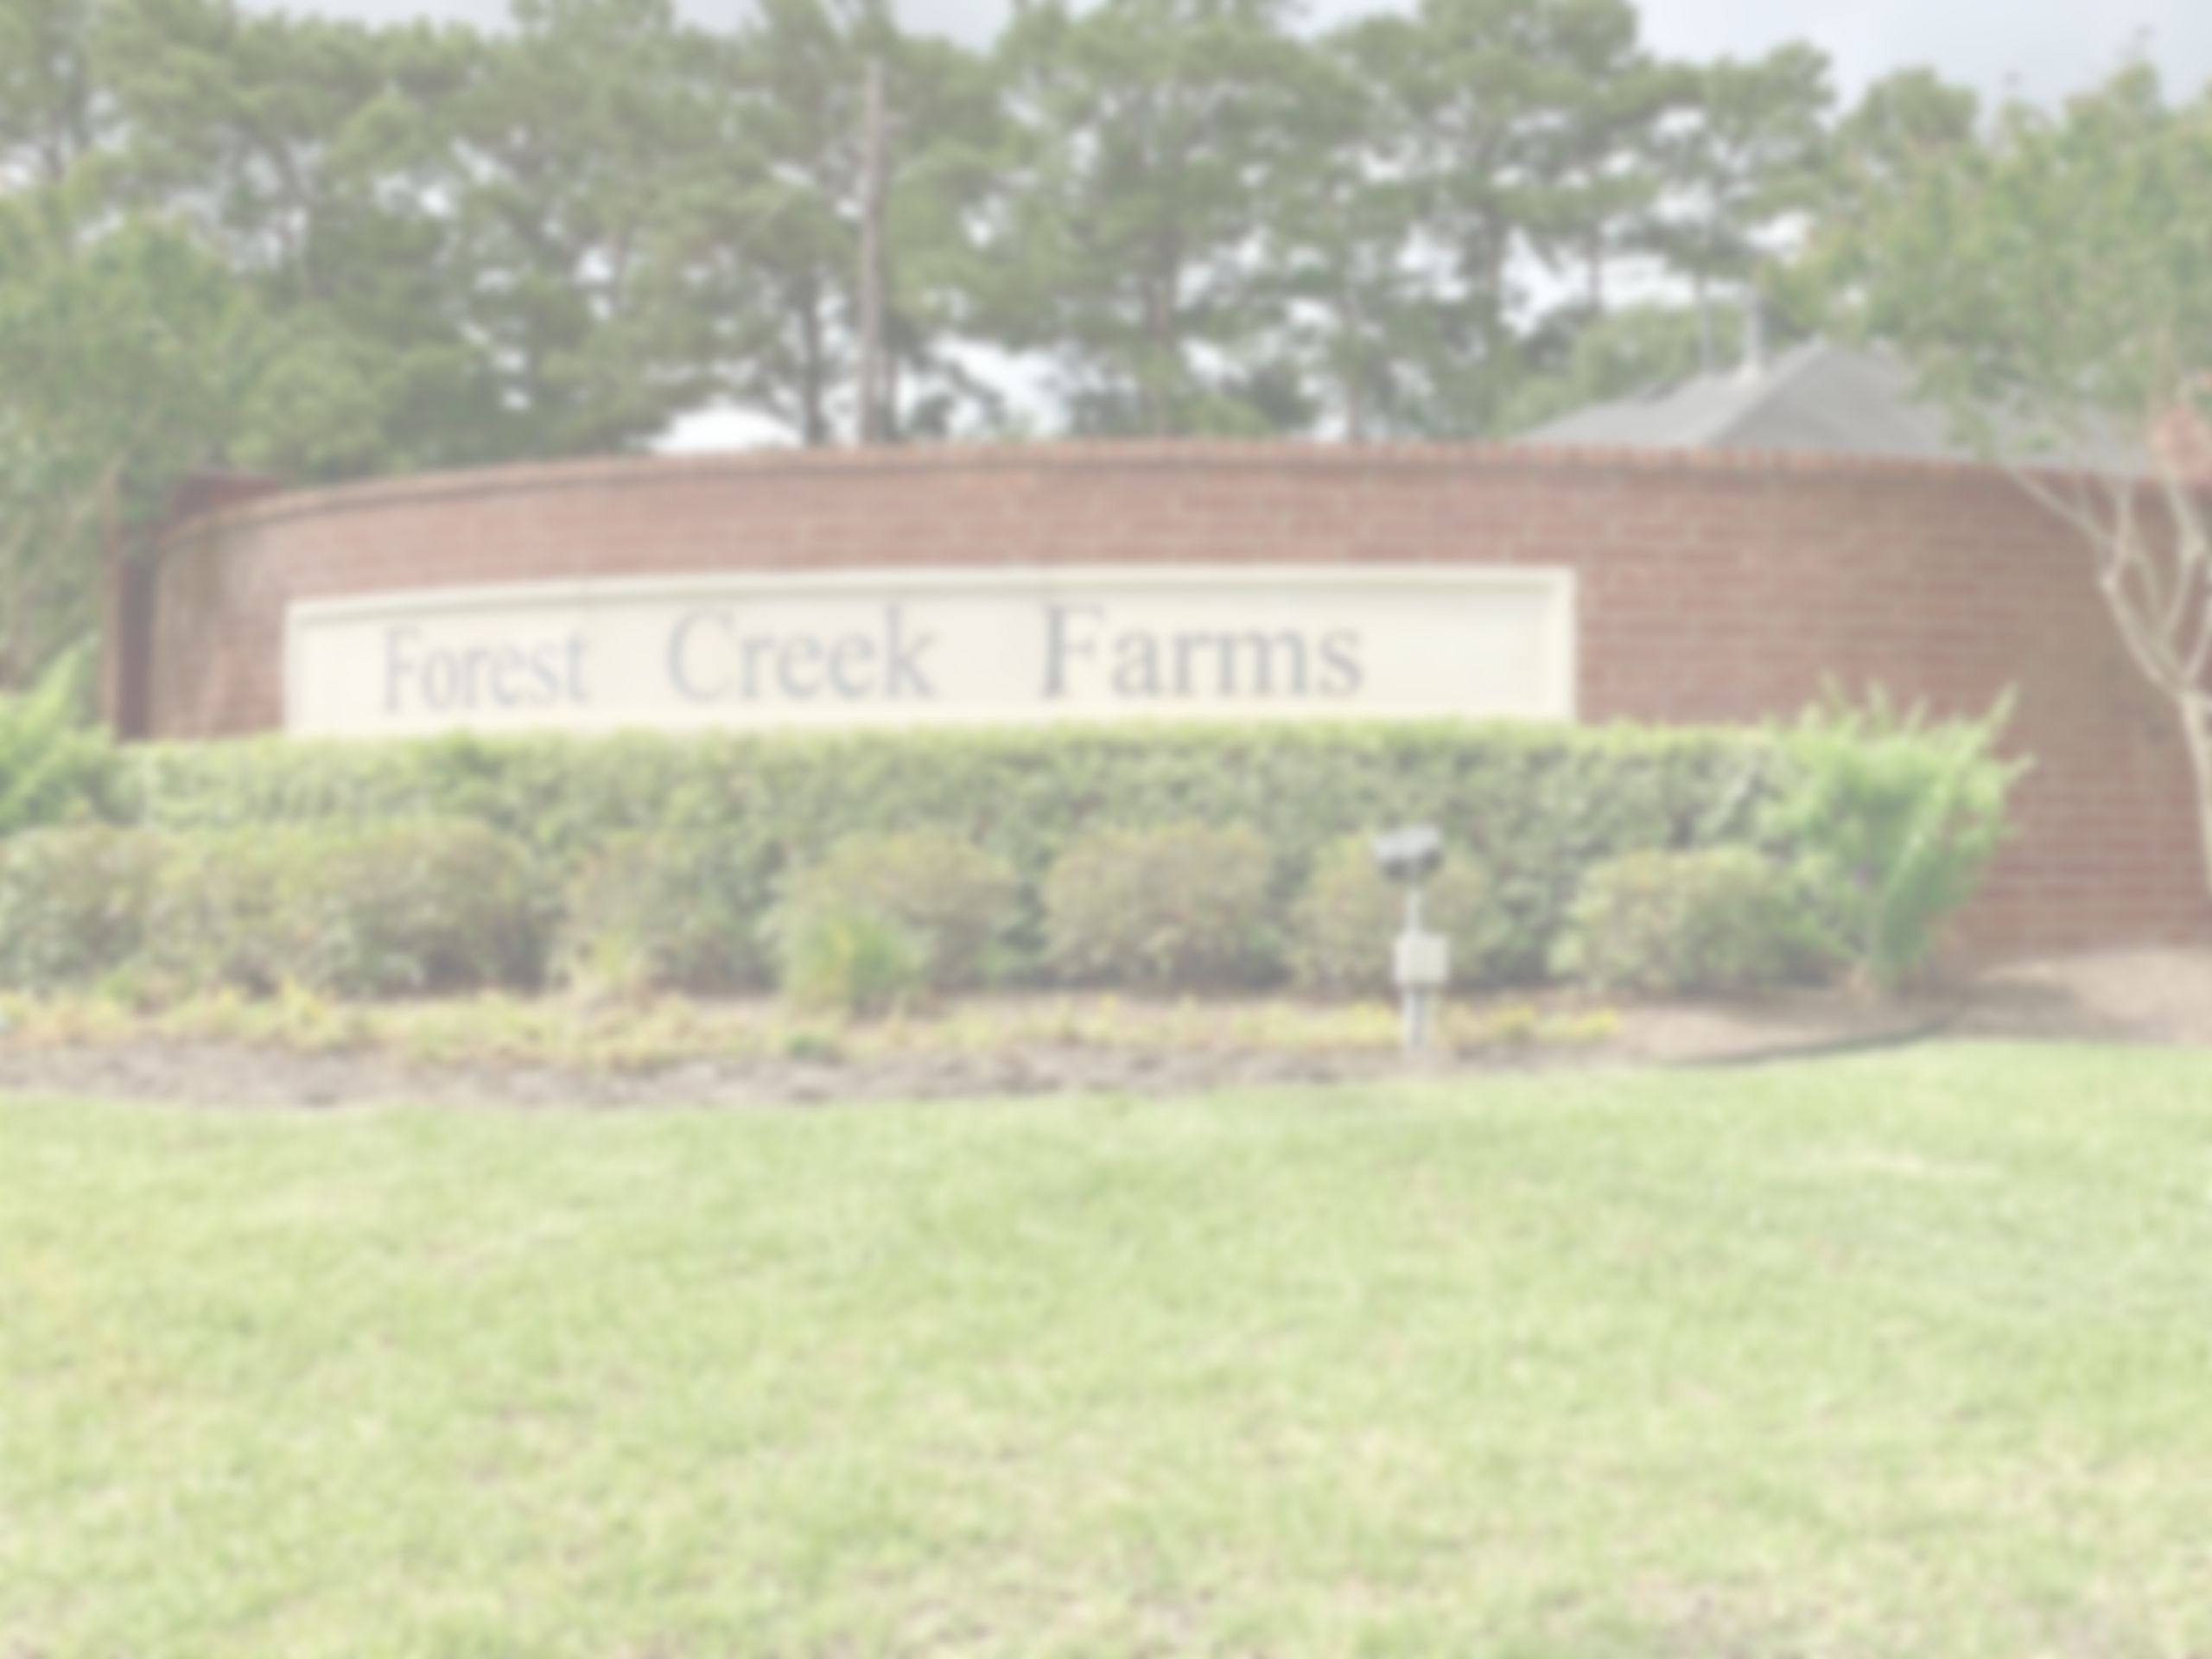 Forest Creek Farms